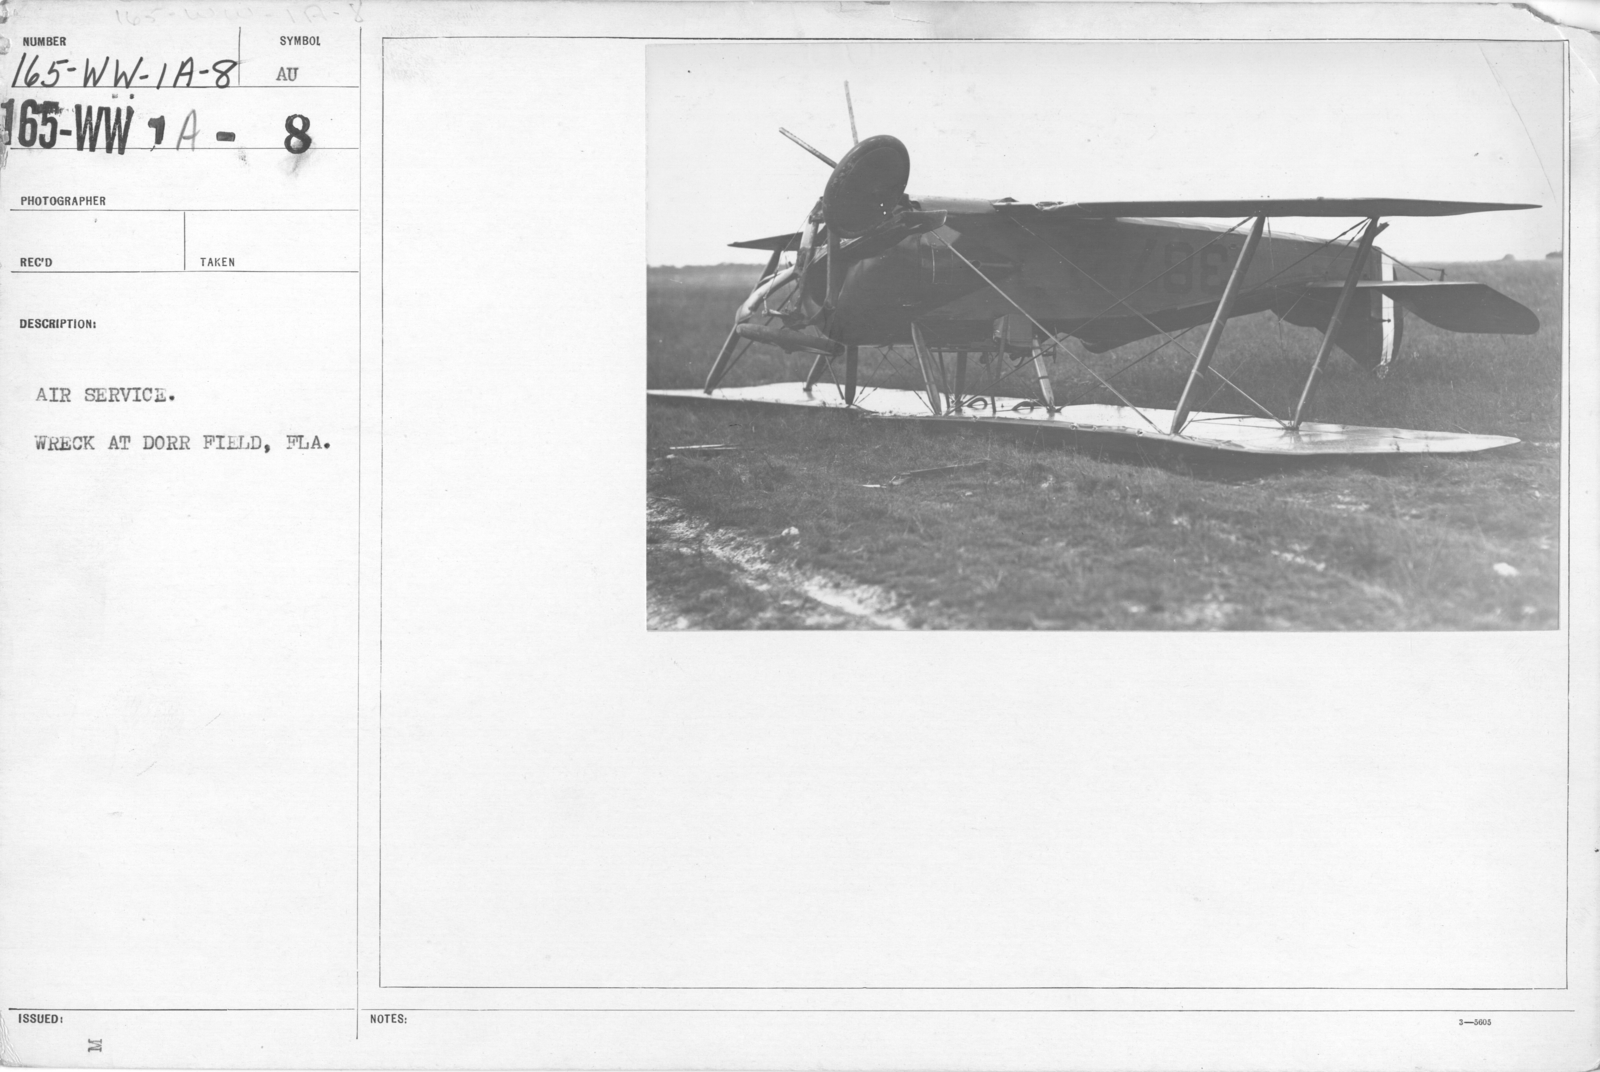 Airplanes - Accidents - Air Service. Wreck  at Dorr Field, Fla